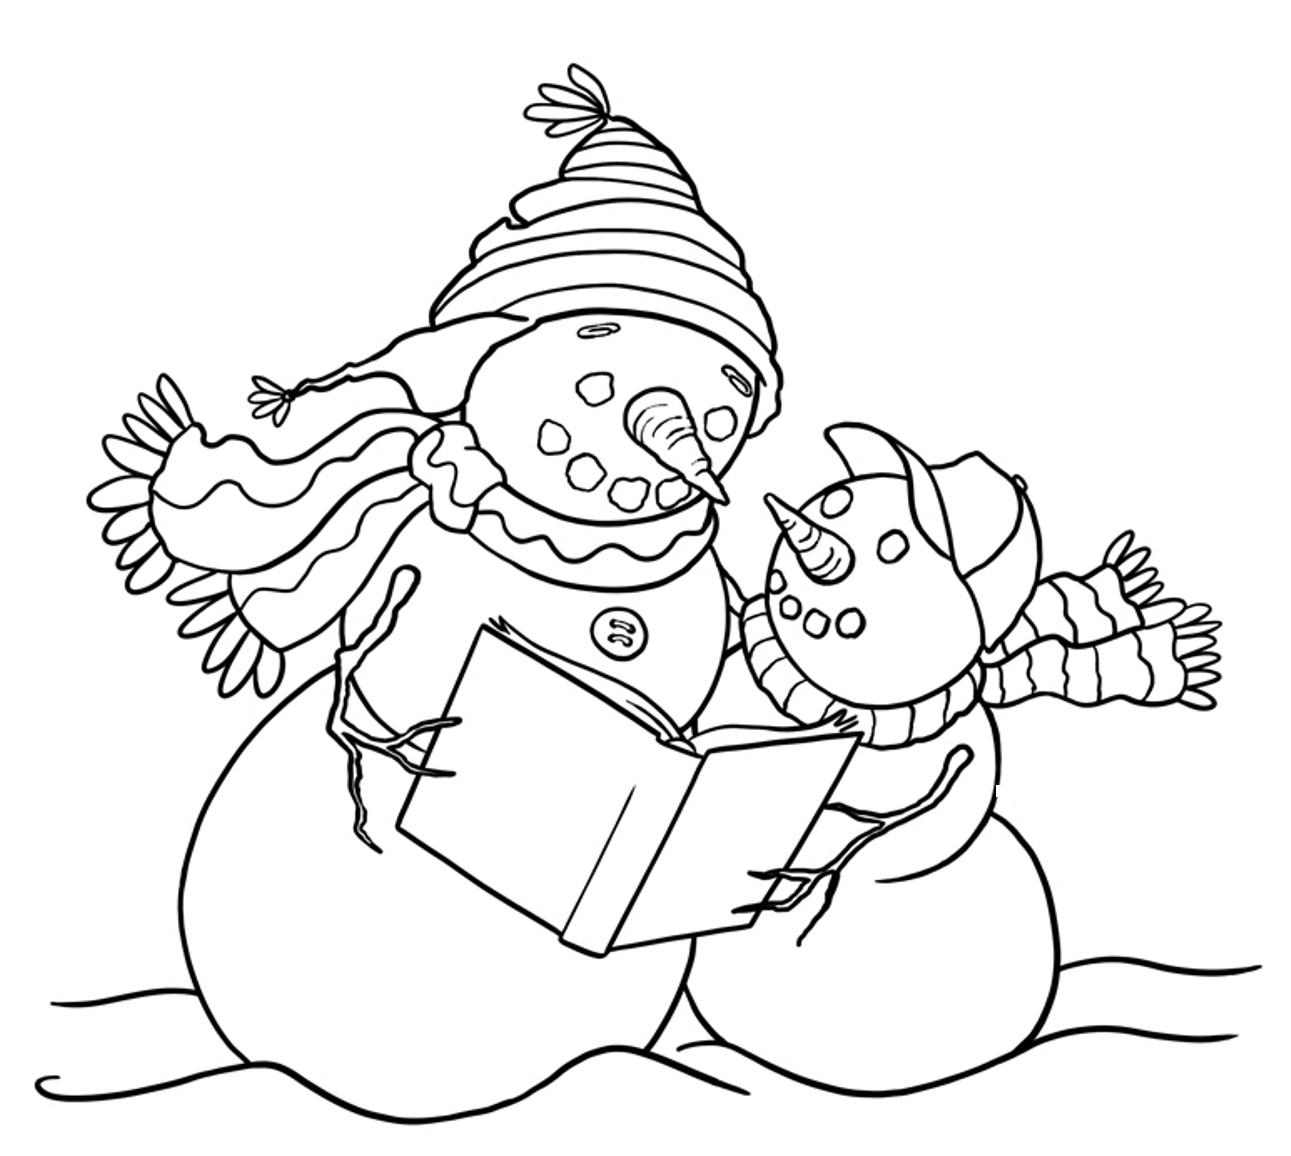 """Search Results for """"Snowmen Coloring Pages"""""""